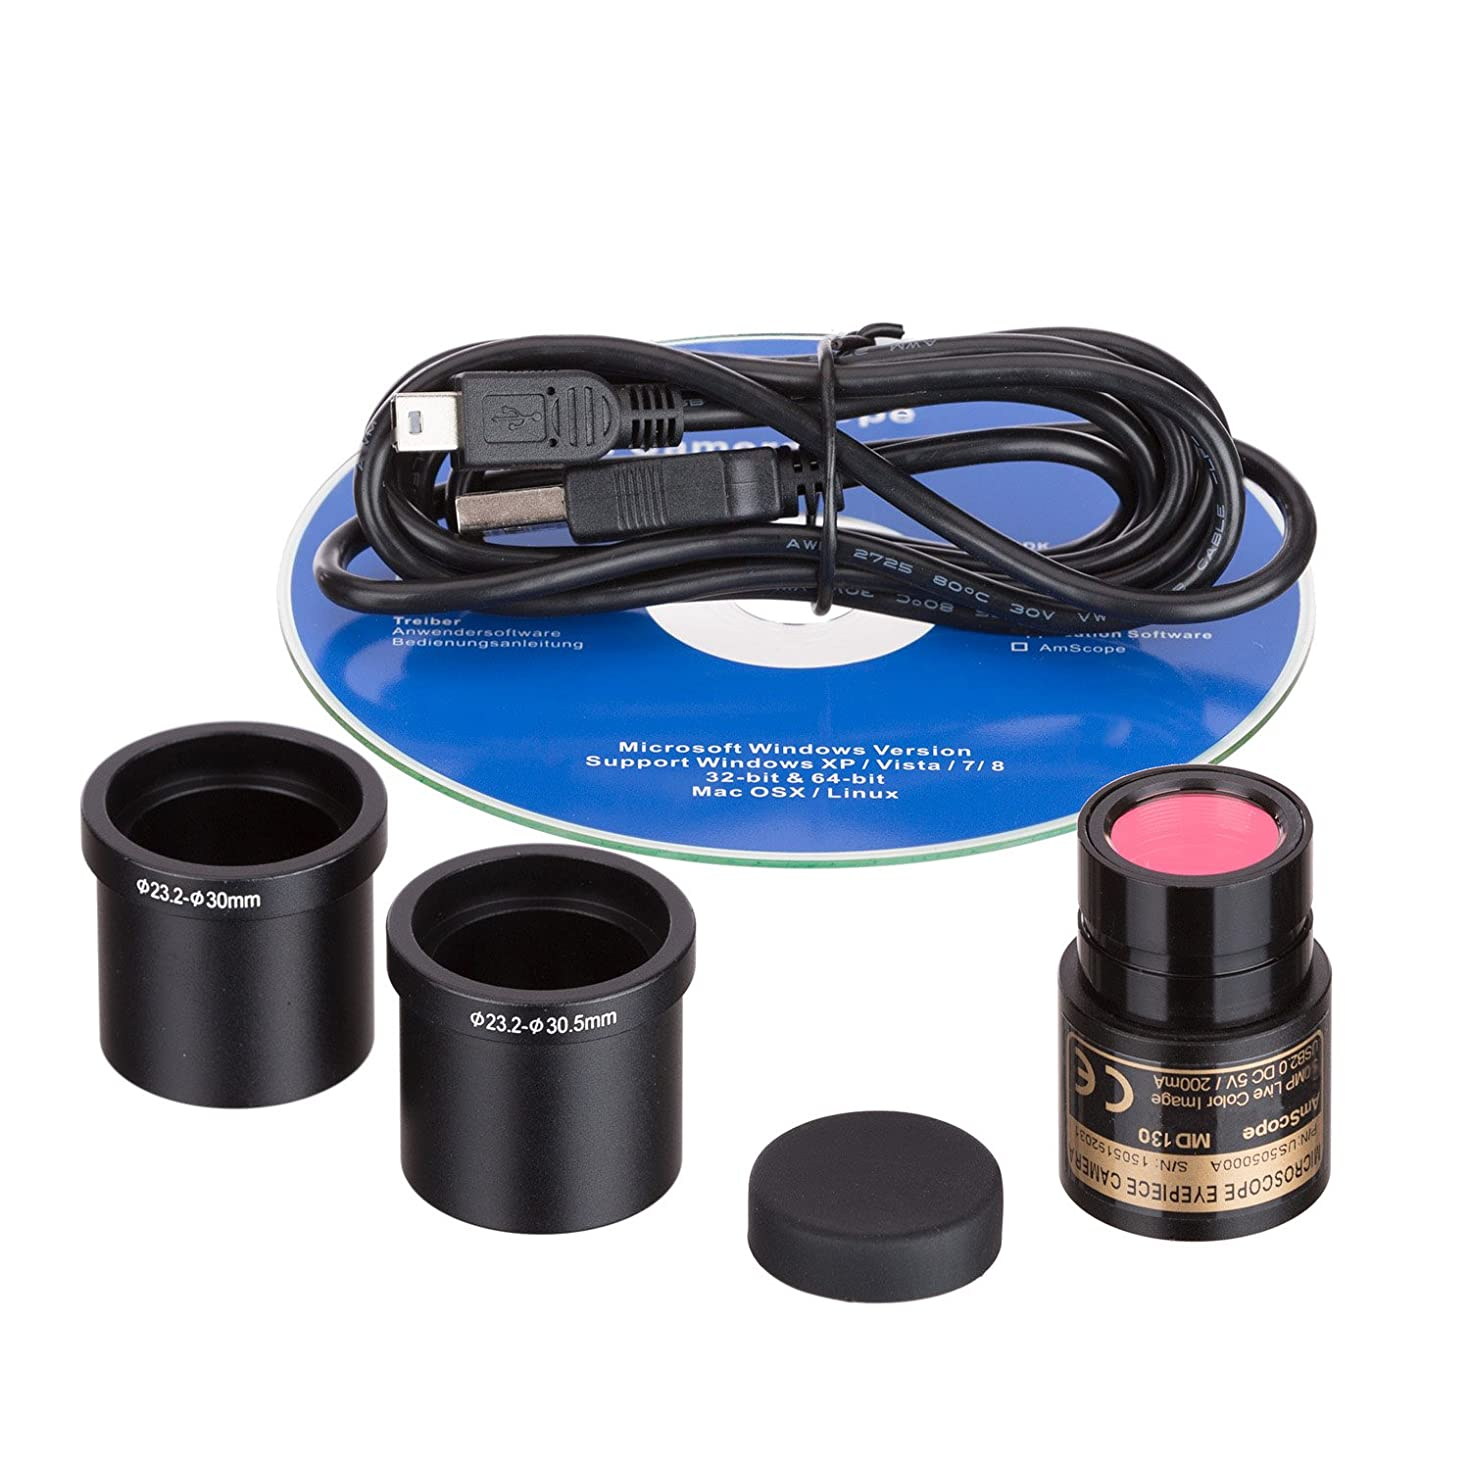 AmScope MD130 1.3MP Digital Microscope Camera for Still and Video Images, 40x Magnification, Eye Tube Mount, USB 2.0 Output, Includes Software